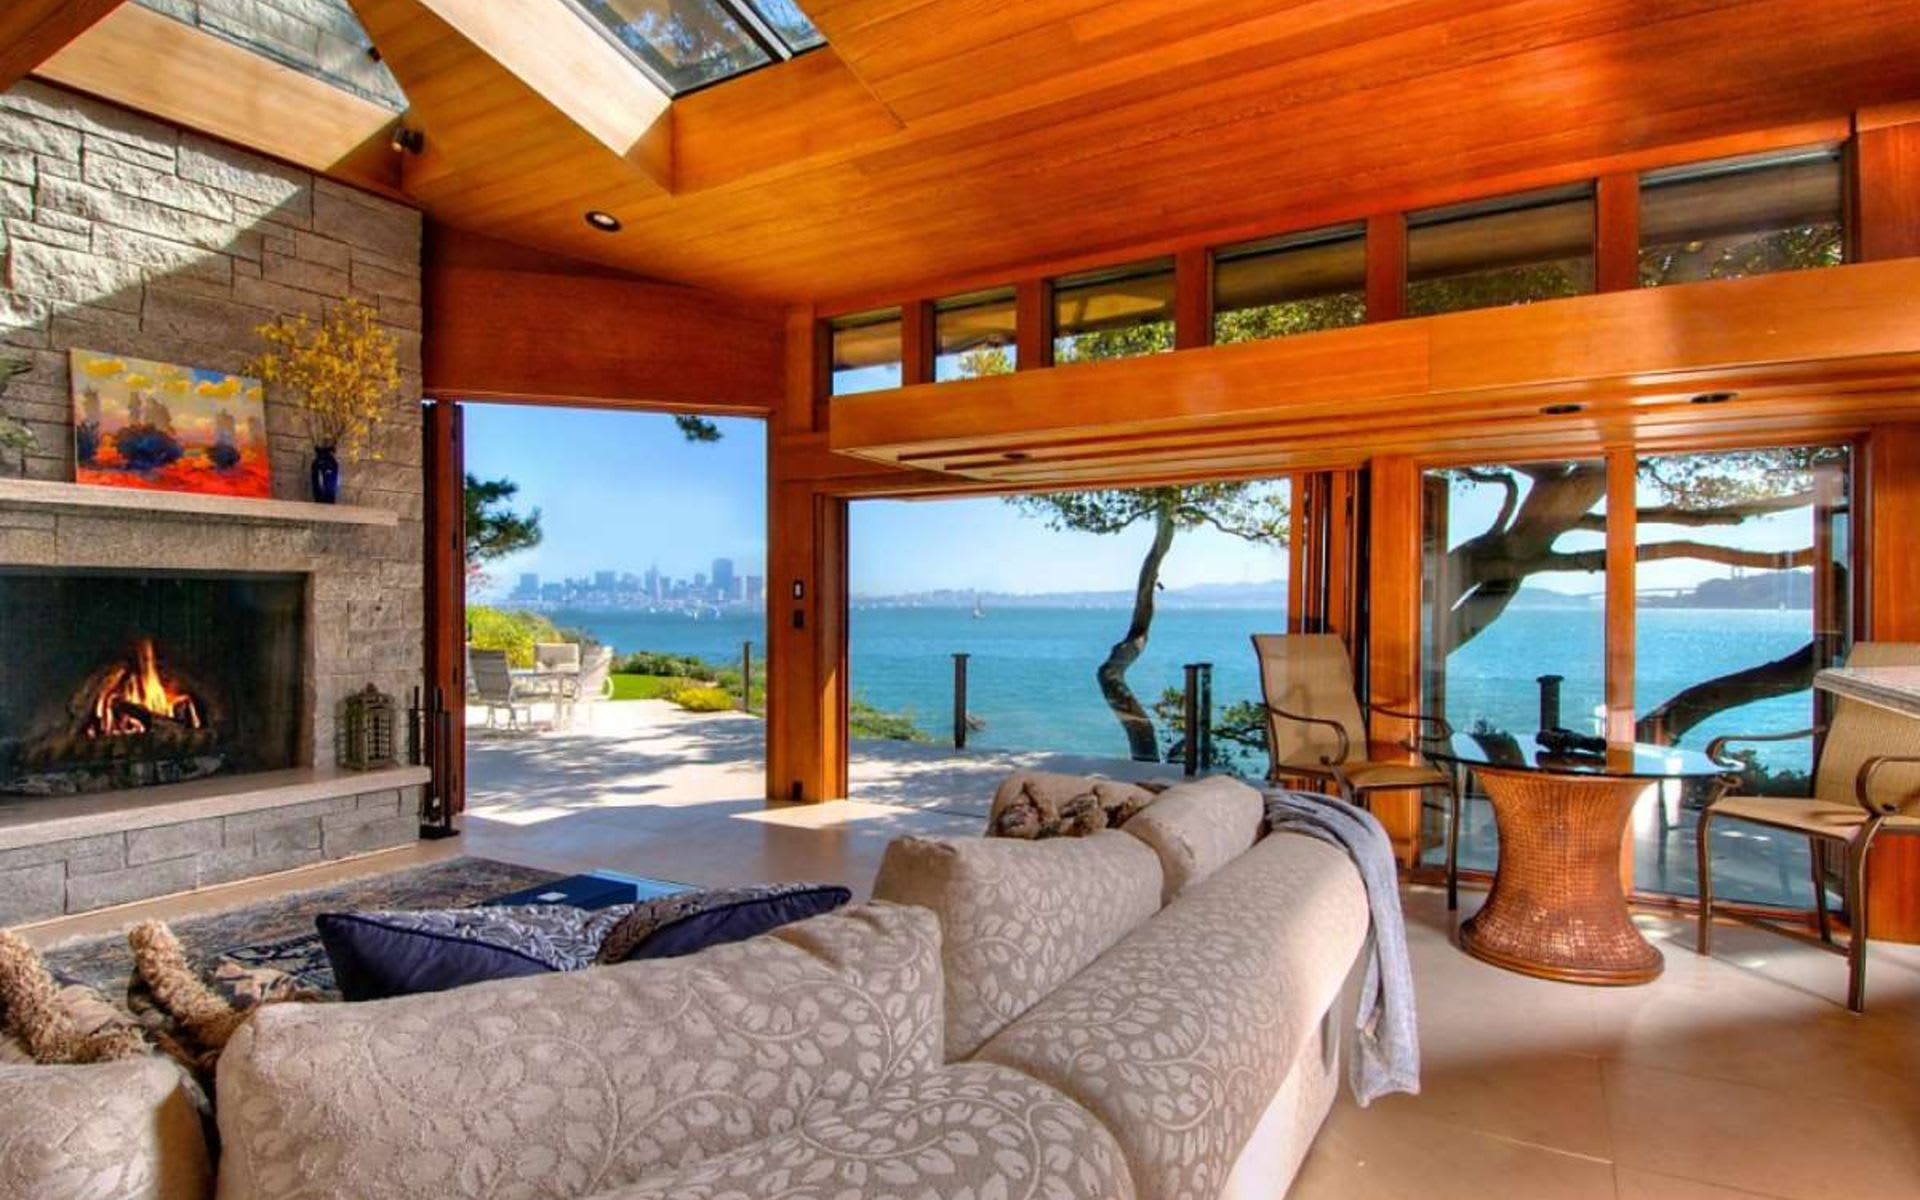 Noted architect's Belvedere home offers shoreline and stunning views